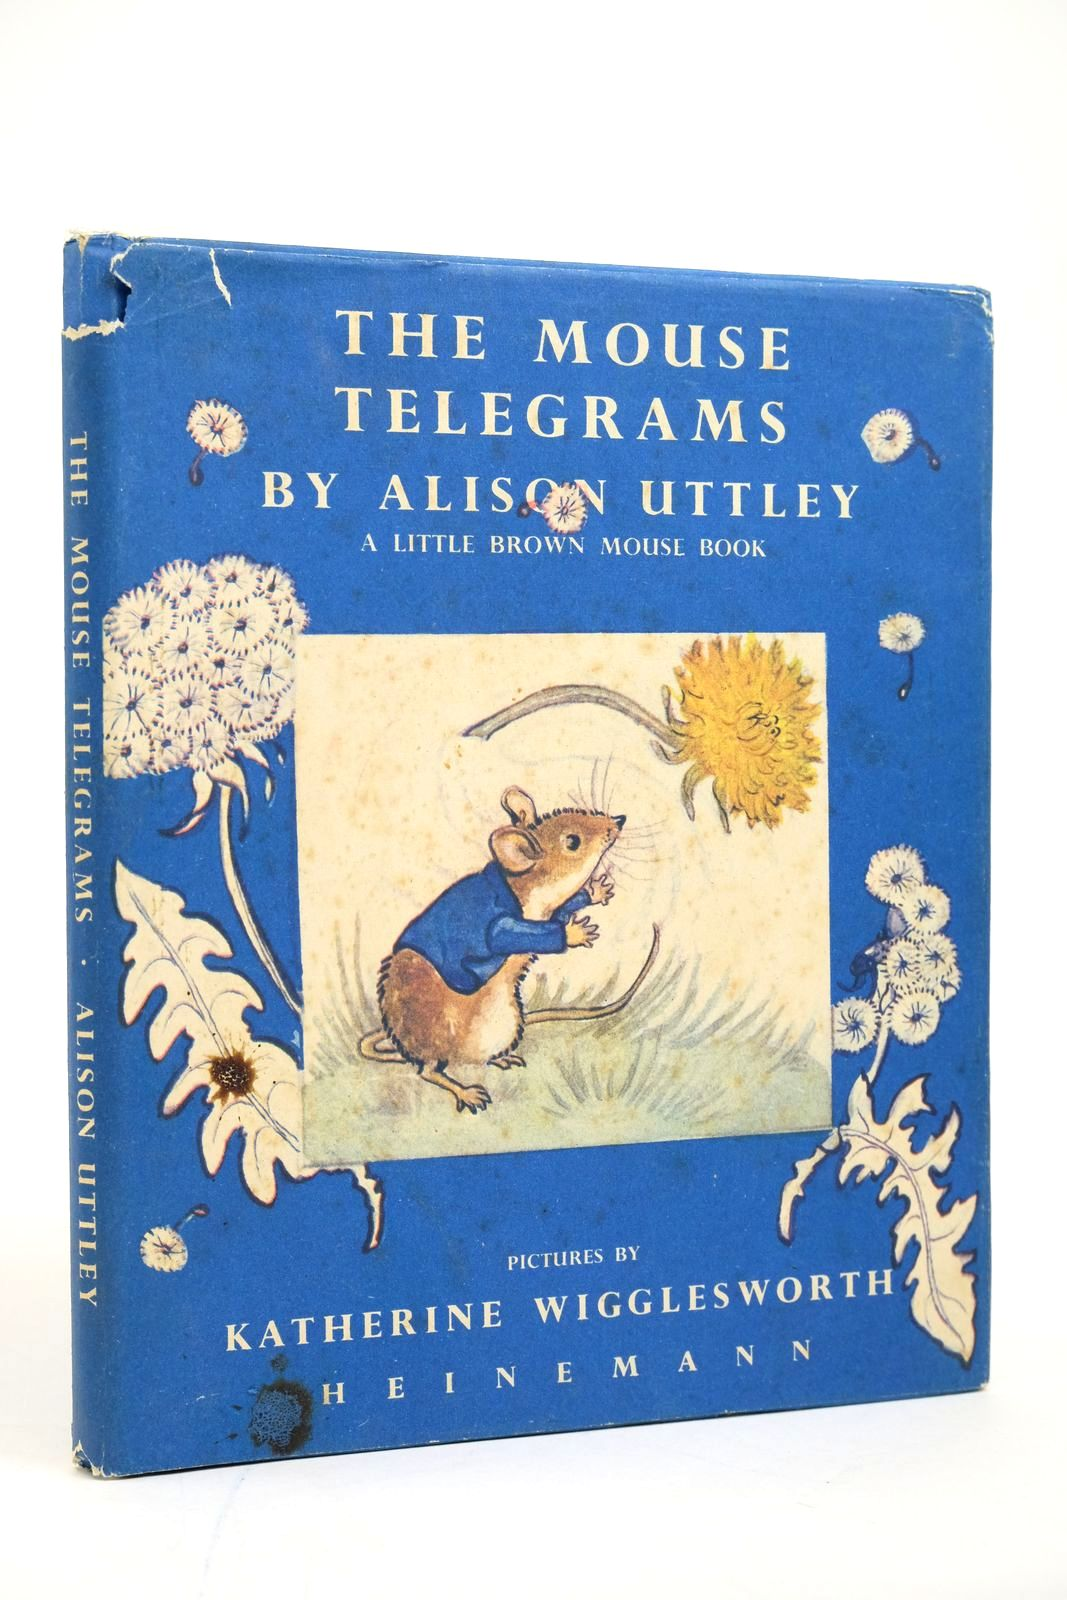 Photo of THE MOUSE TELEGRAMS written by Uttley, Alison illustrated by Wigglesworth, Katherine published by Heinemann (STOCK CODE: 2135084)  for sale by Stella & Rose's Books